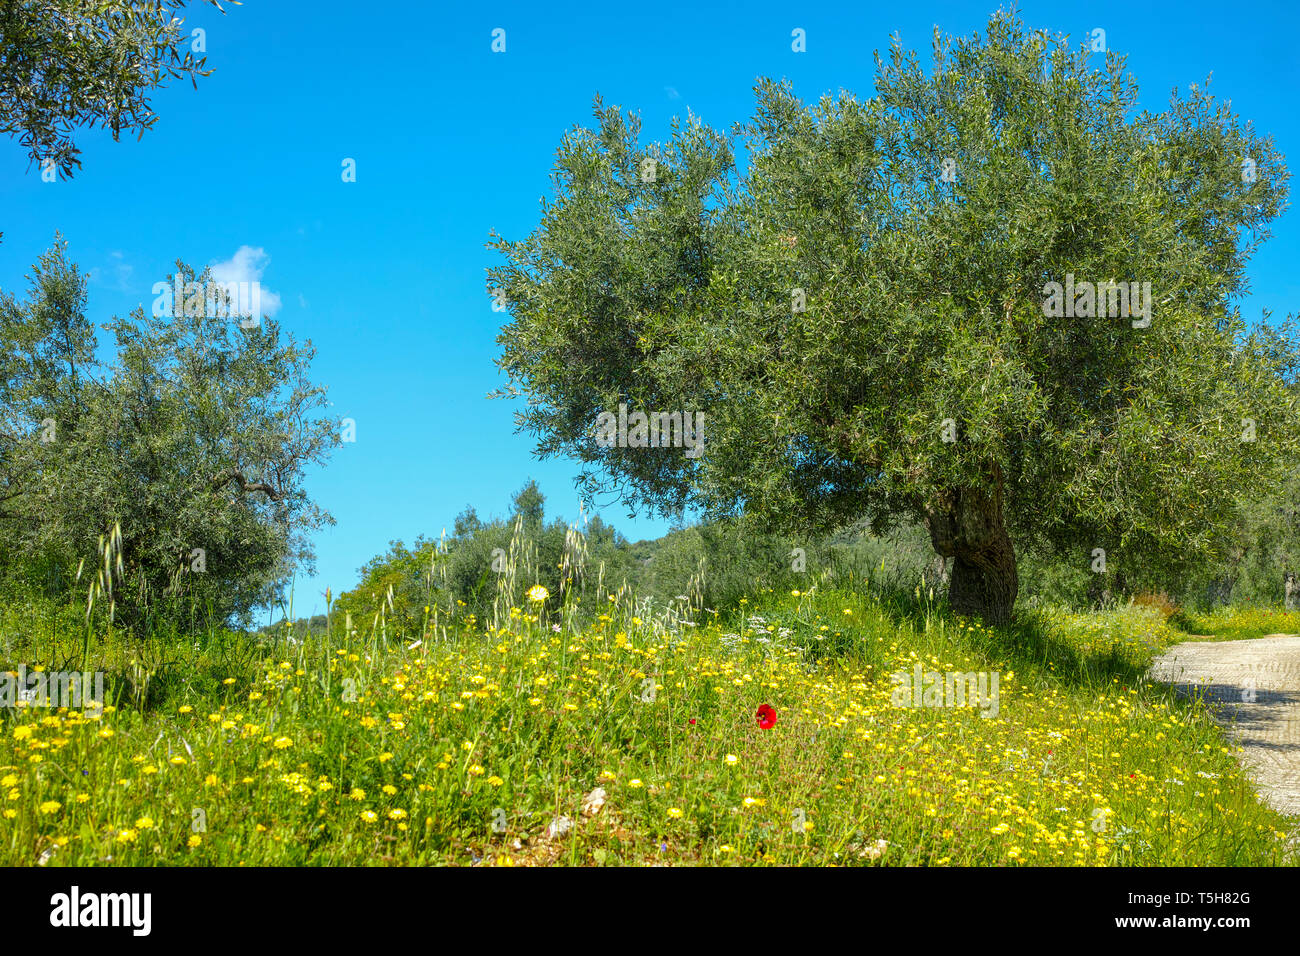 Countryside landscape with olive trees grove in spring season with colorful blossom of wild flowers Stock Photo